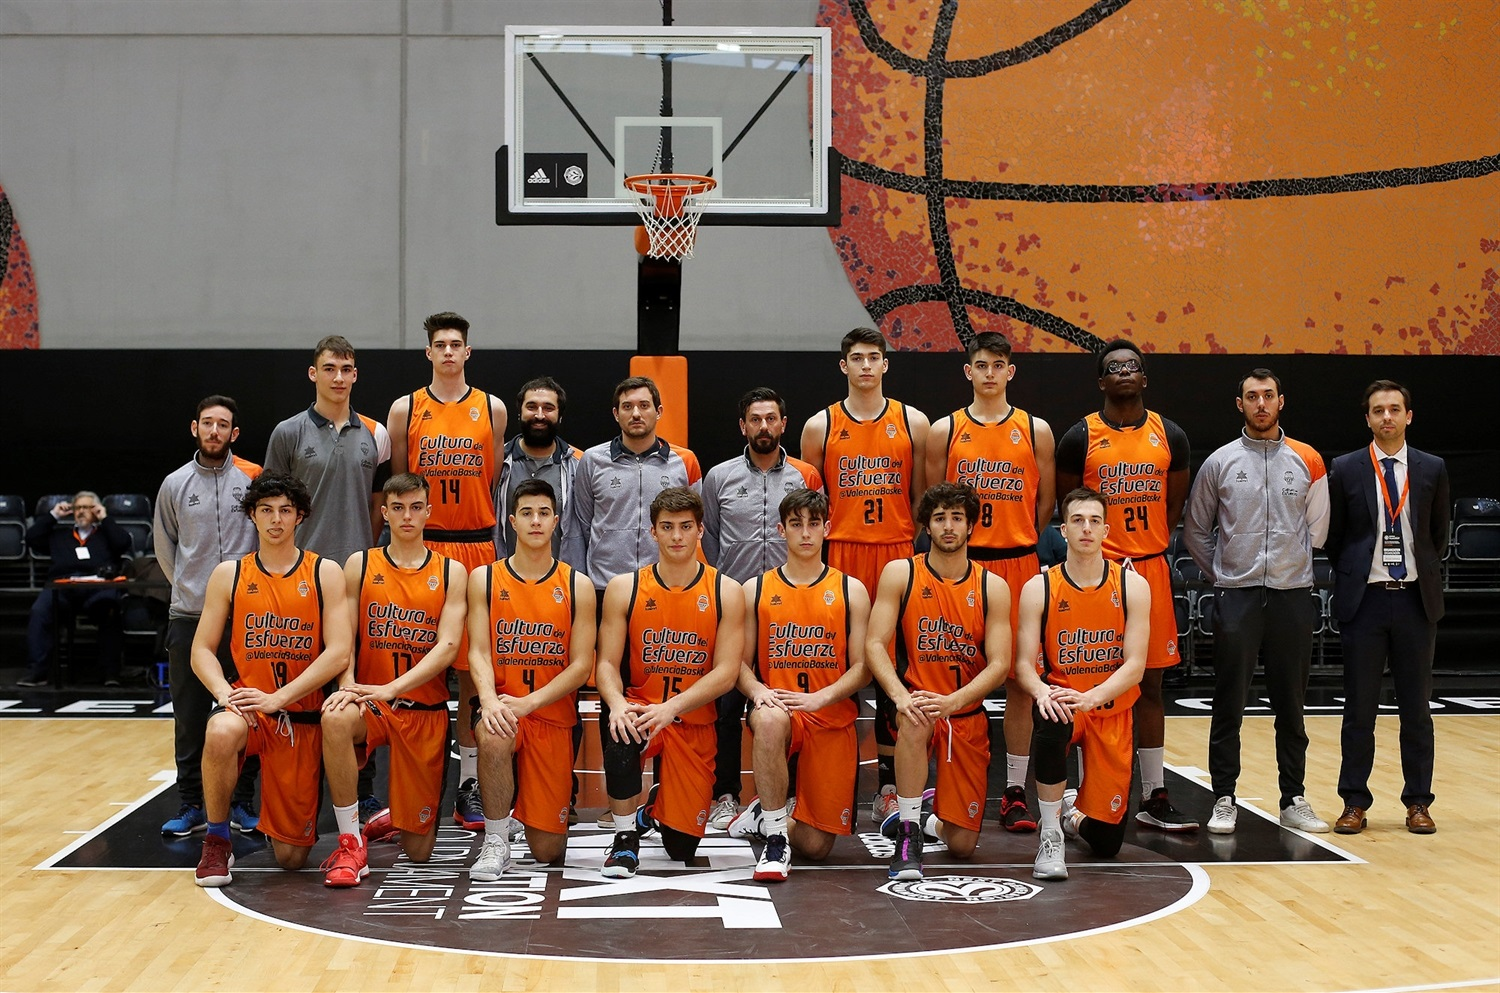 U18 Valencia Basket (photo Miguel Angel Polo - Valencia) - JT18